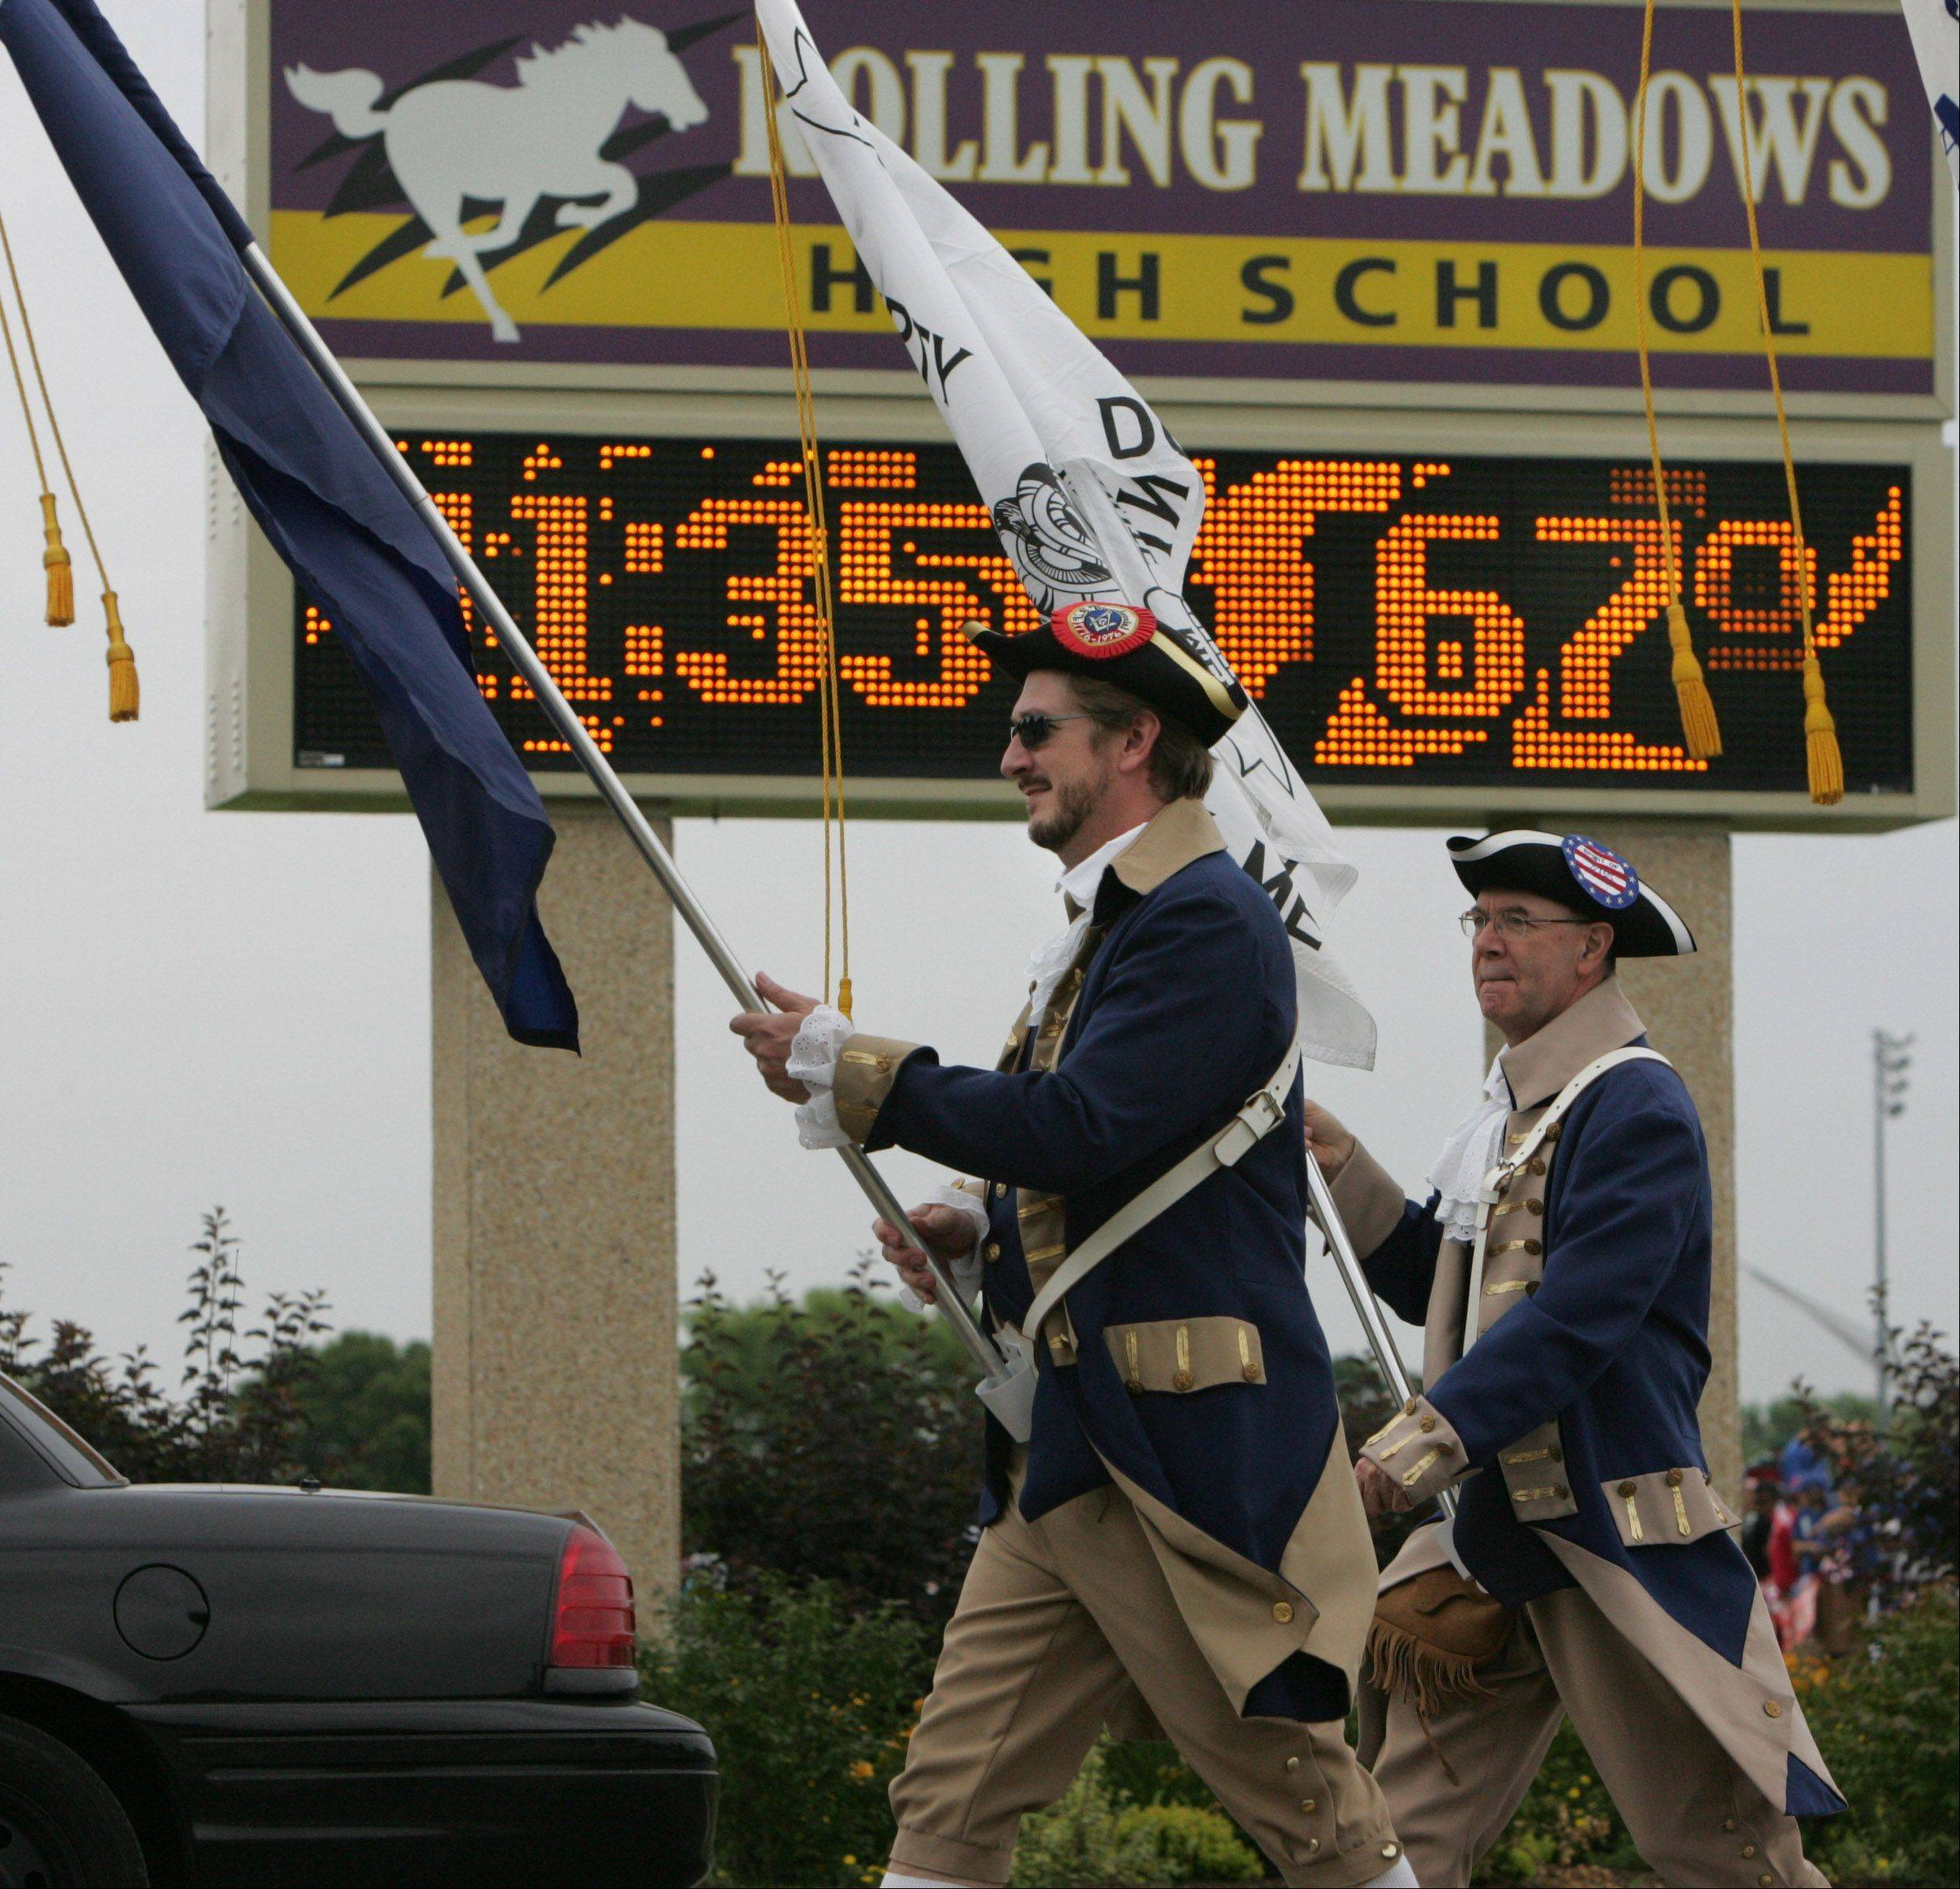 Rolling Meadows' annual Fourth of July parade is facing cancellation next year after its primary sponsor -- the city -- announced it could not afford its usual contribution of nearly $17,000.